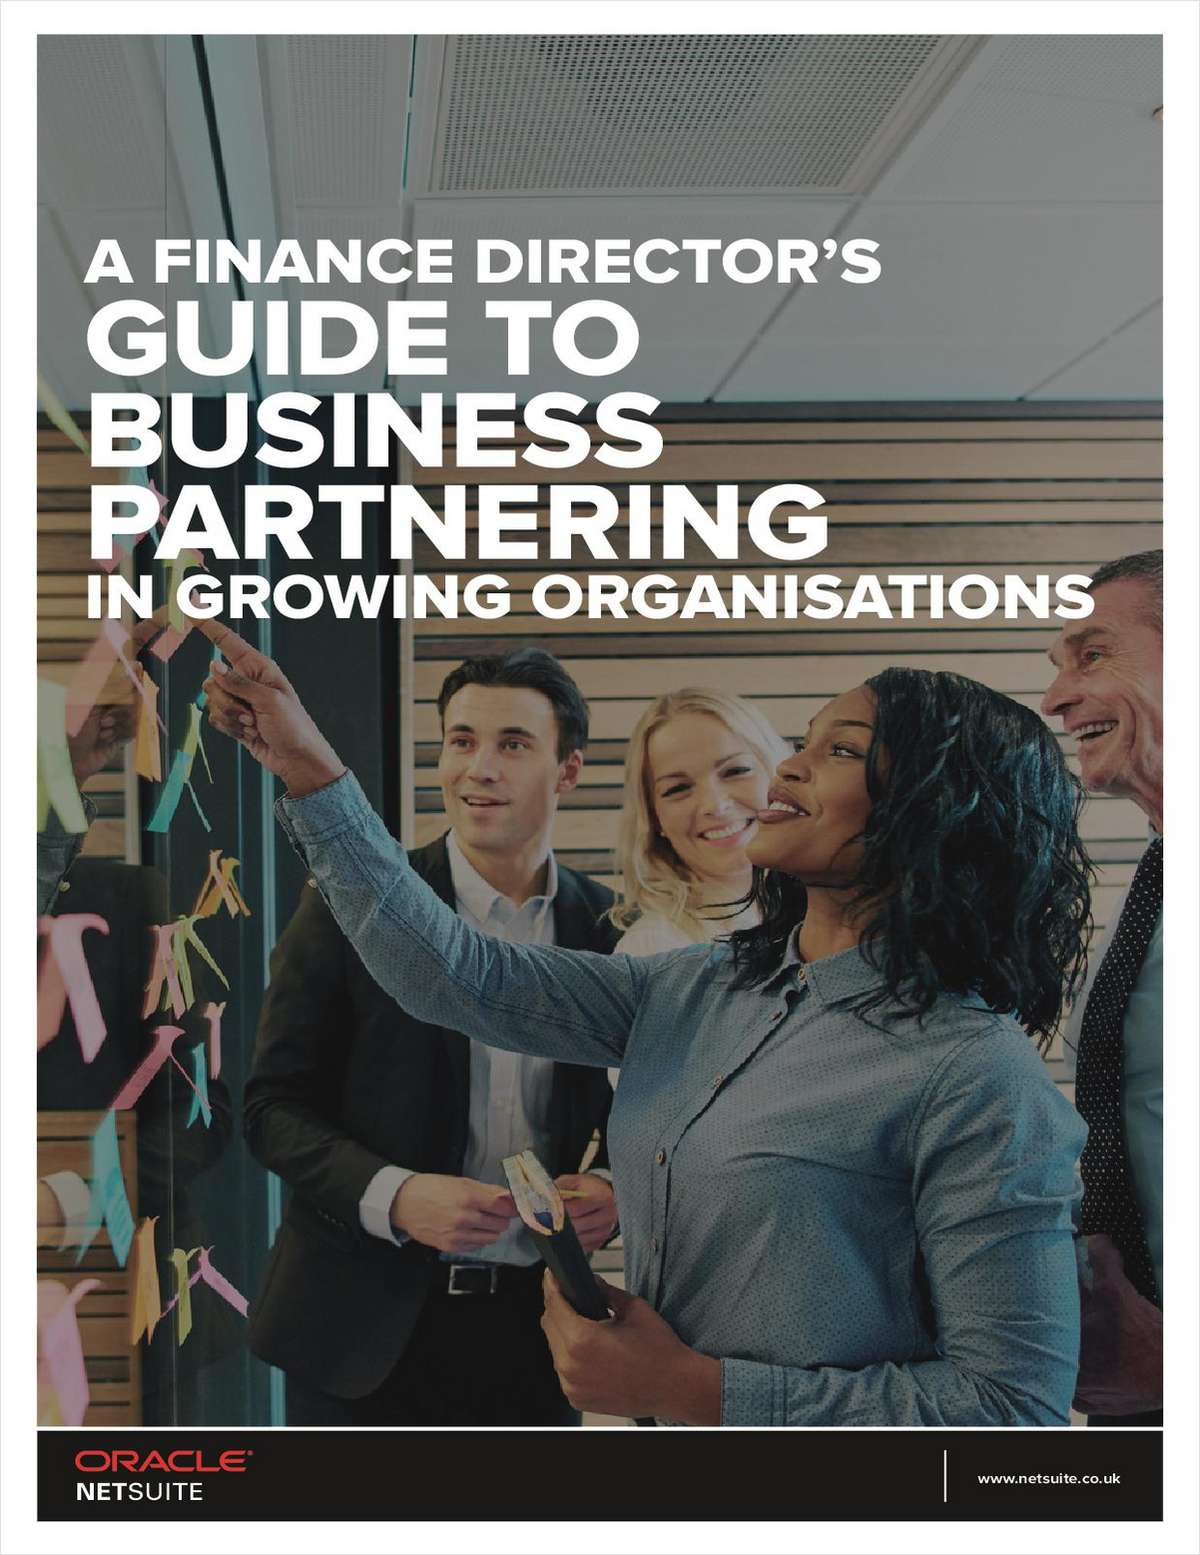 A Finance Director's Guide to Business Partnering in Growing Organisations